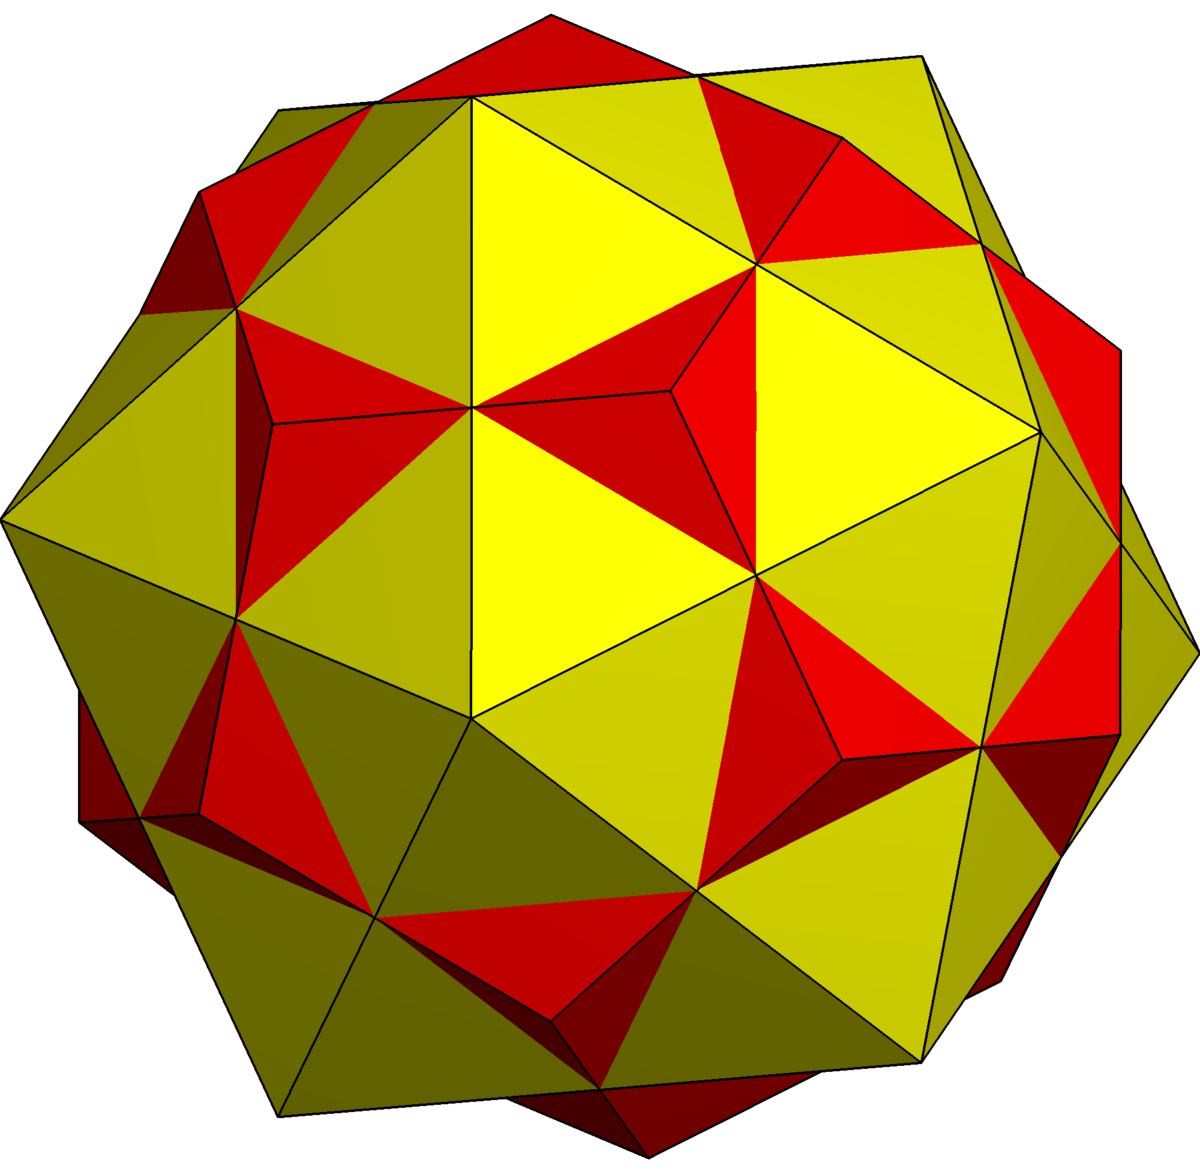 Compound of dodecahedron and icosahedron - Wikipedia